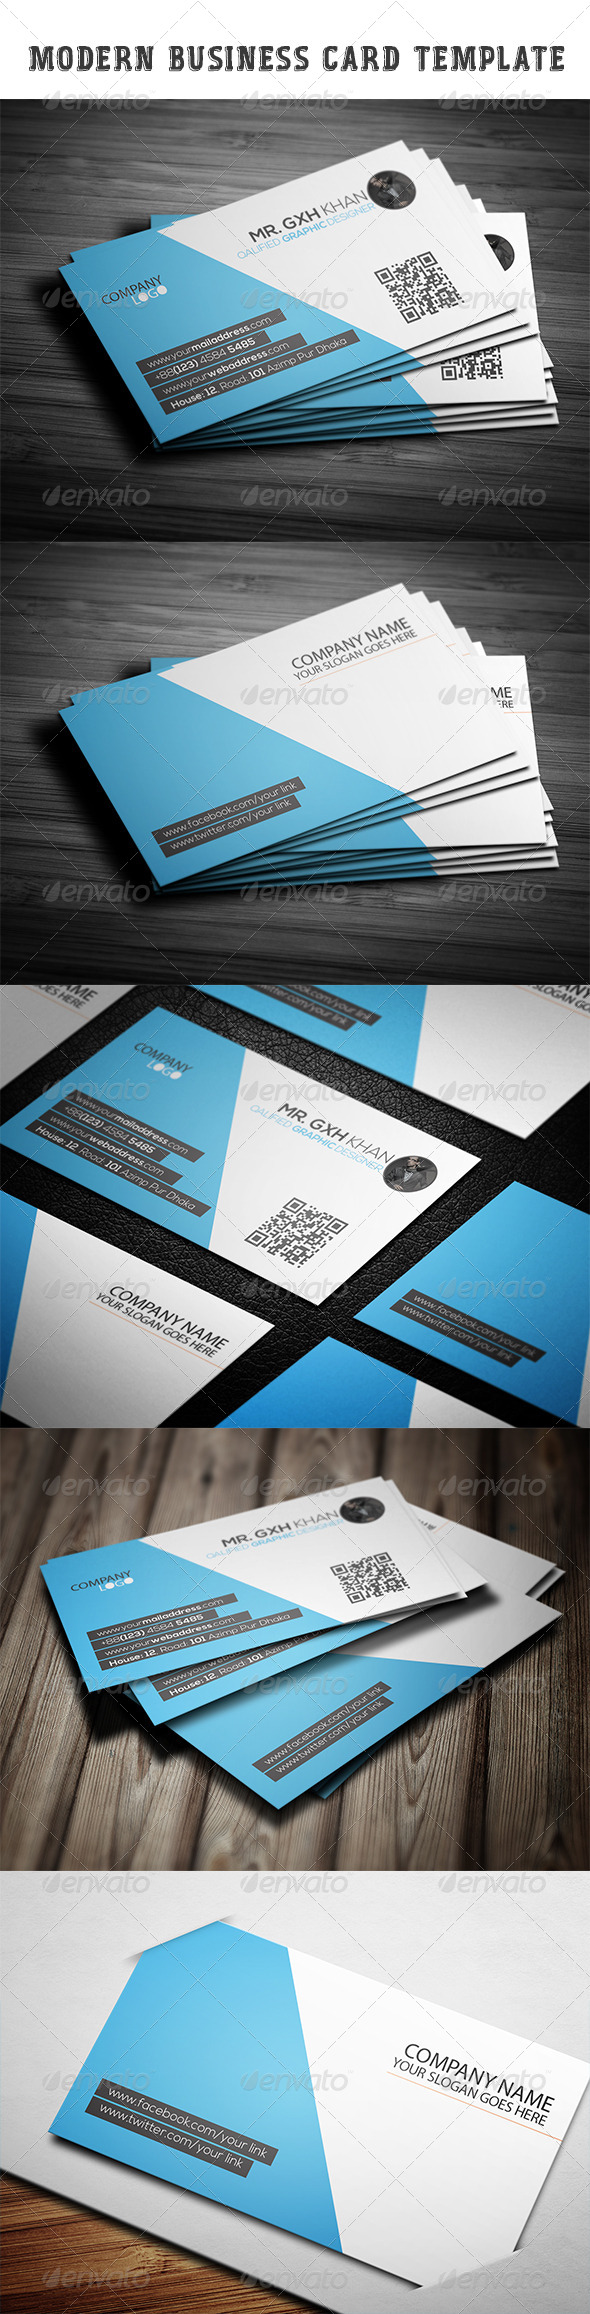 GraphicRiver Modern Business Card Template 7389180